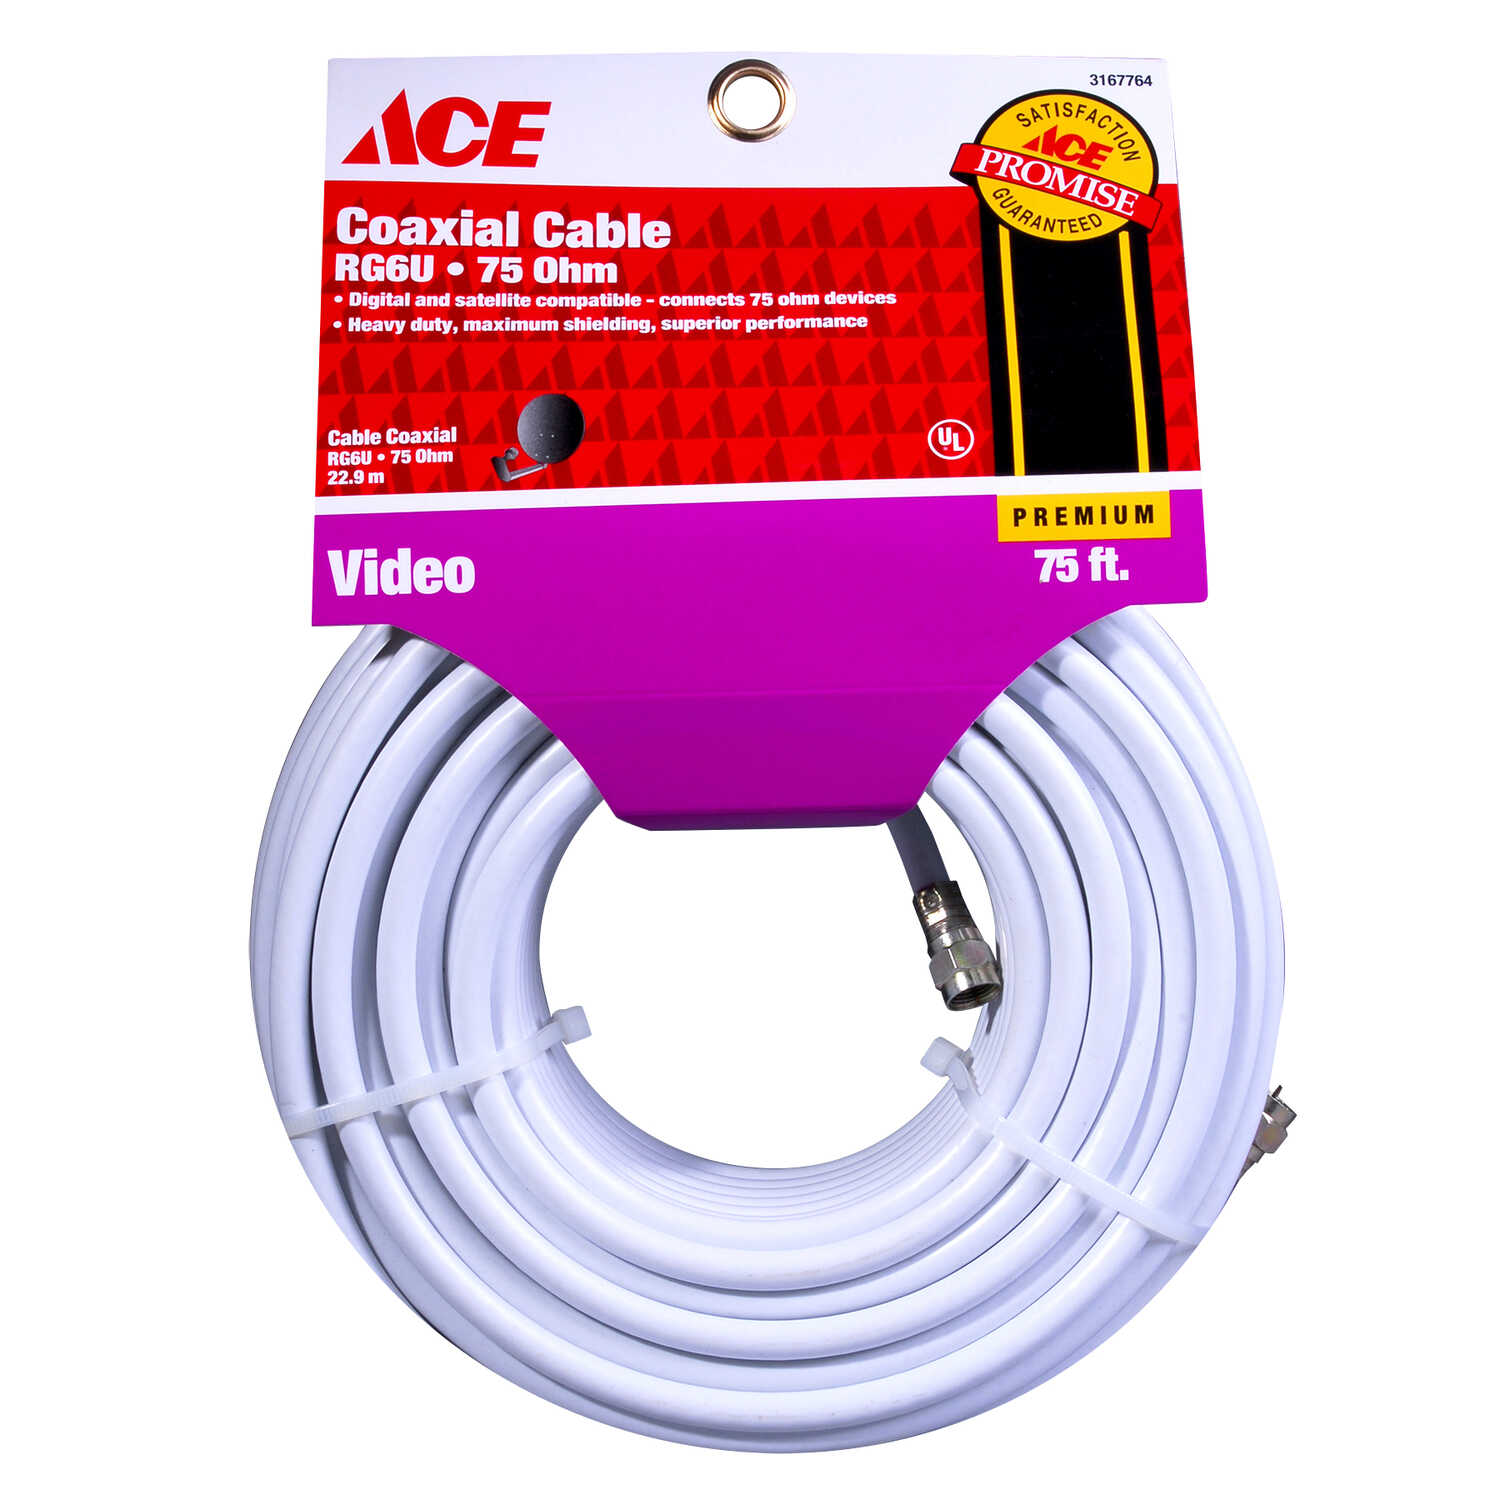 Ace  75 ft. Video Coaxial Cable